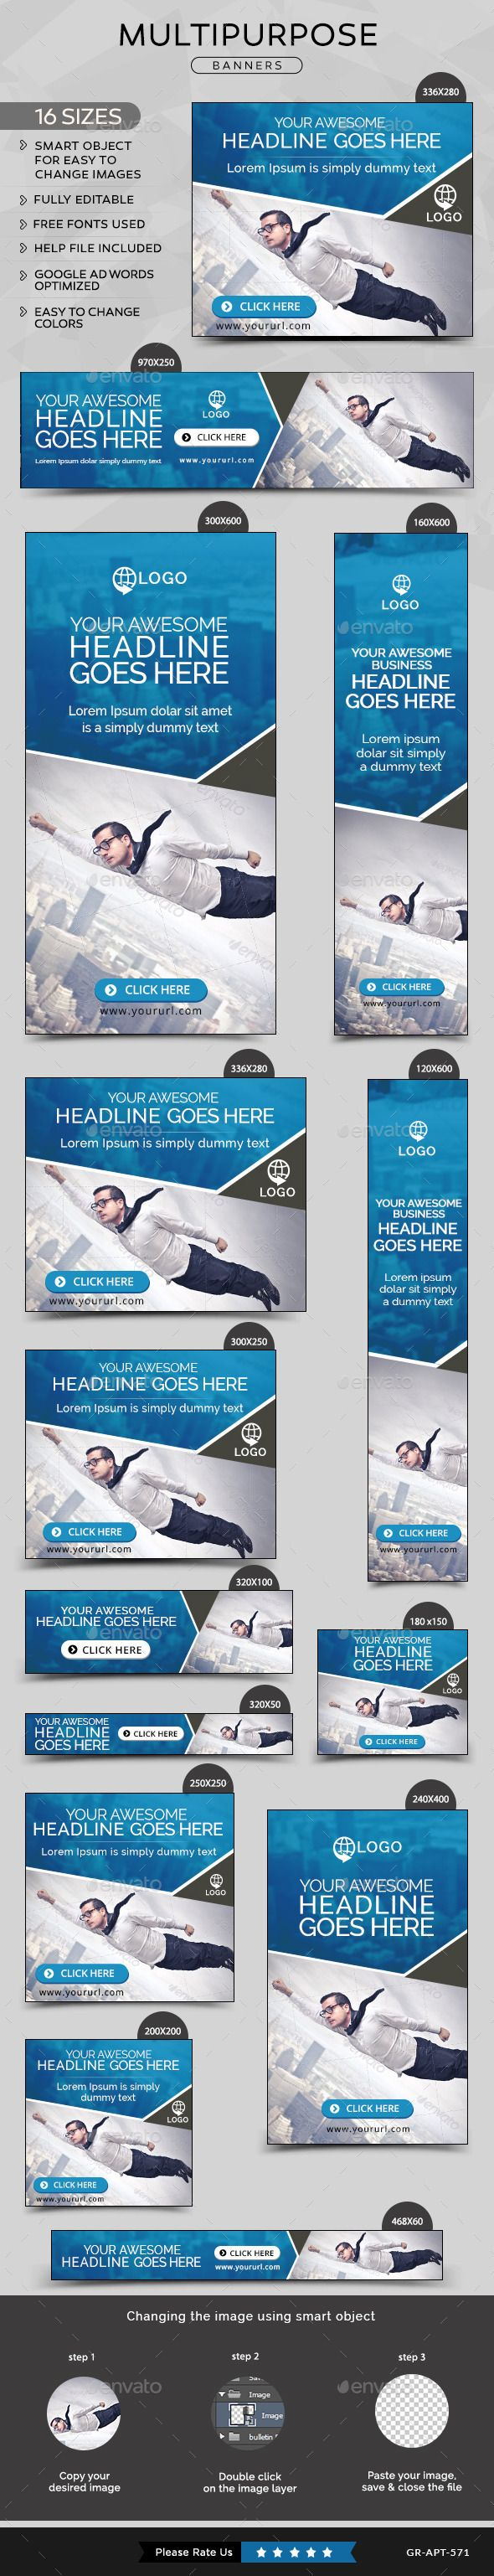 Multipurpose Banners Design Template - Banners & Ads Web Template PSD. Download here: https://graphicriver.net/item/multipurpose-banners/11293529?s_rank=1793&ref=yinkira